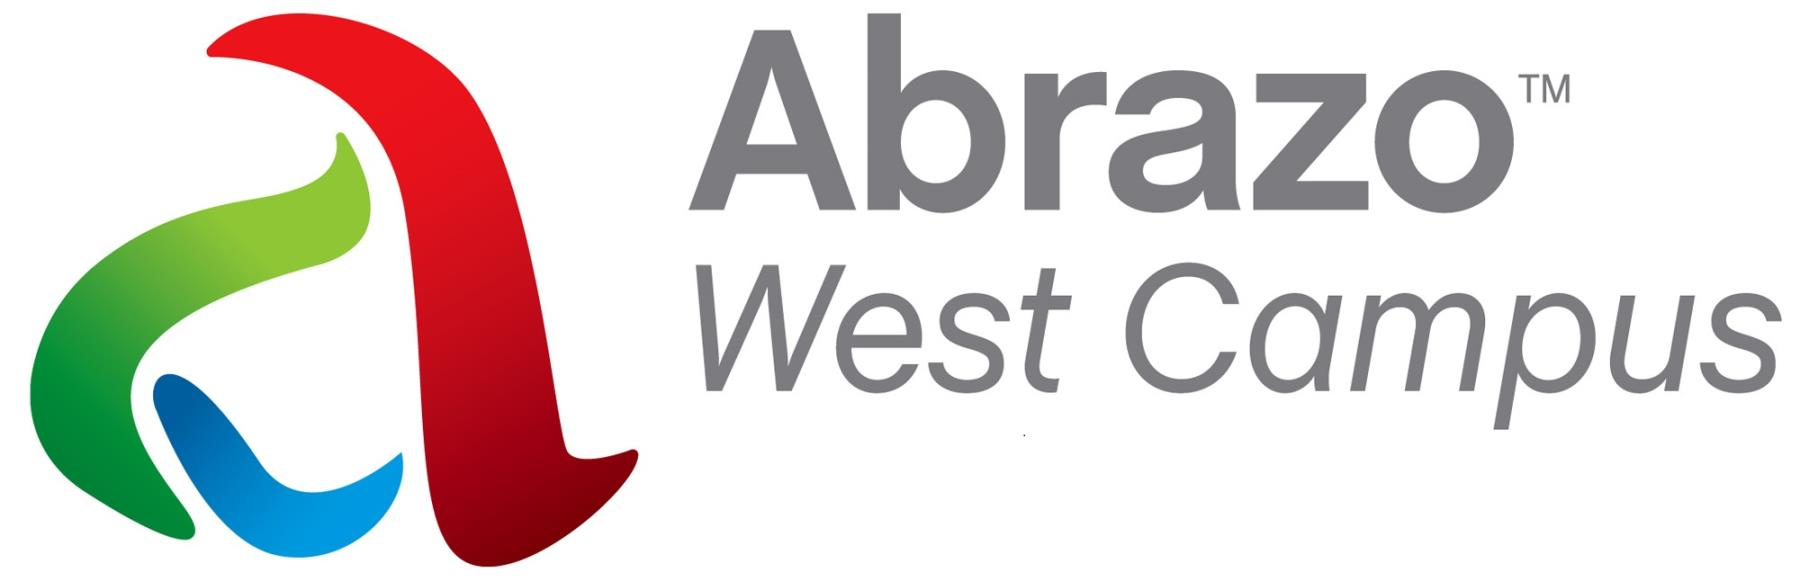 Abrazo West Campus logo